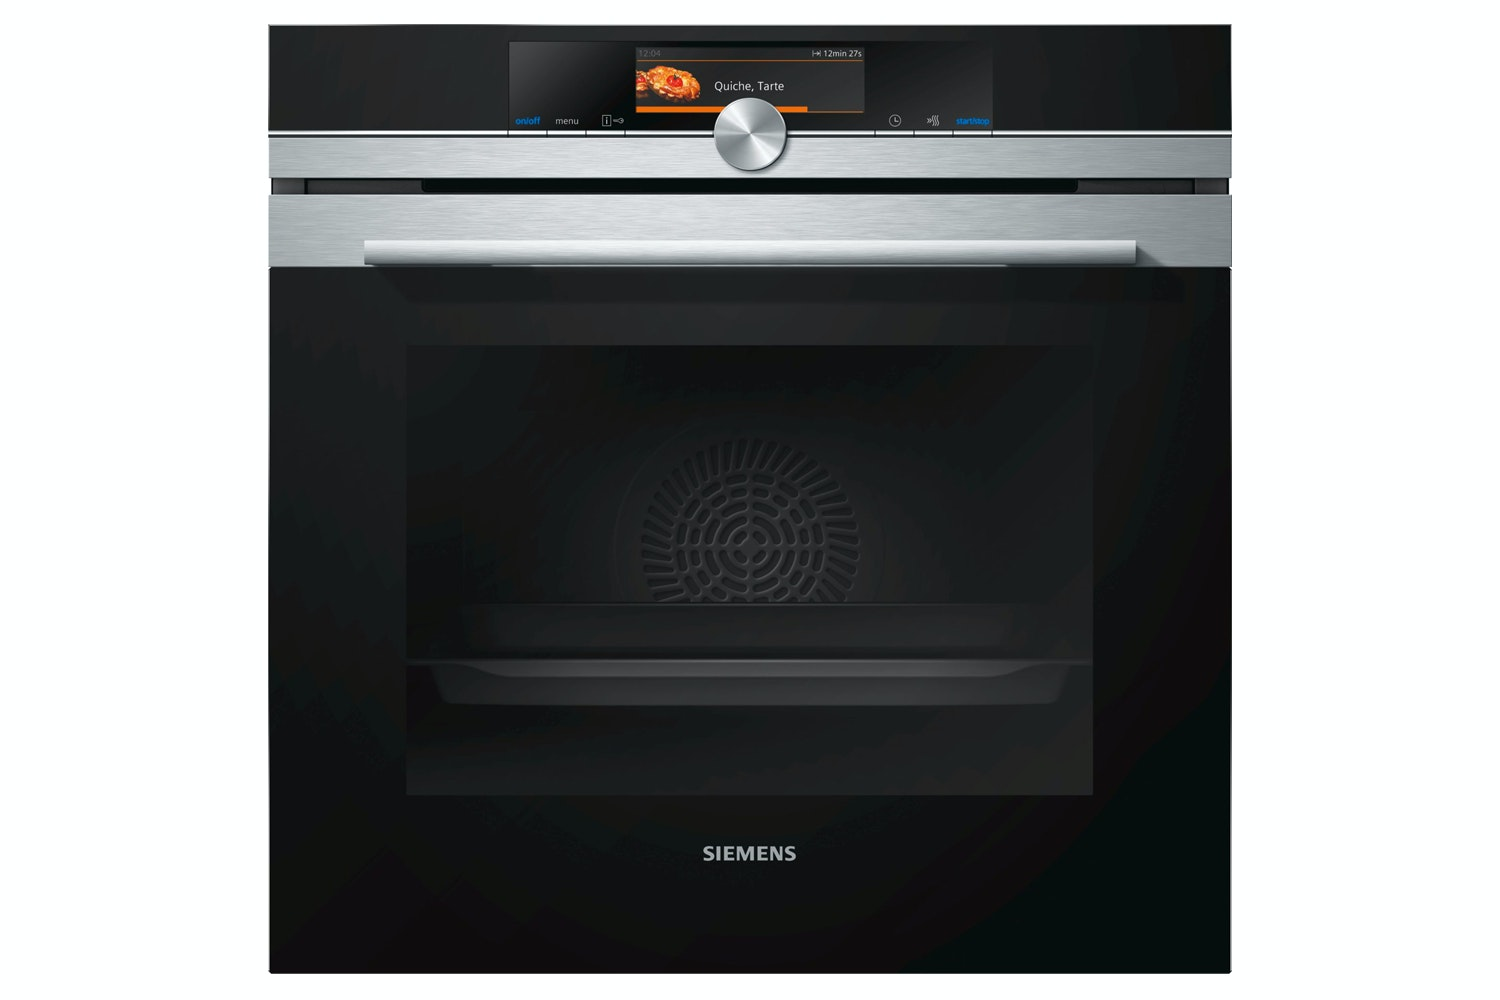 Siemens Built-in Single Oven | HB678GBS6B